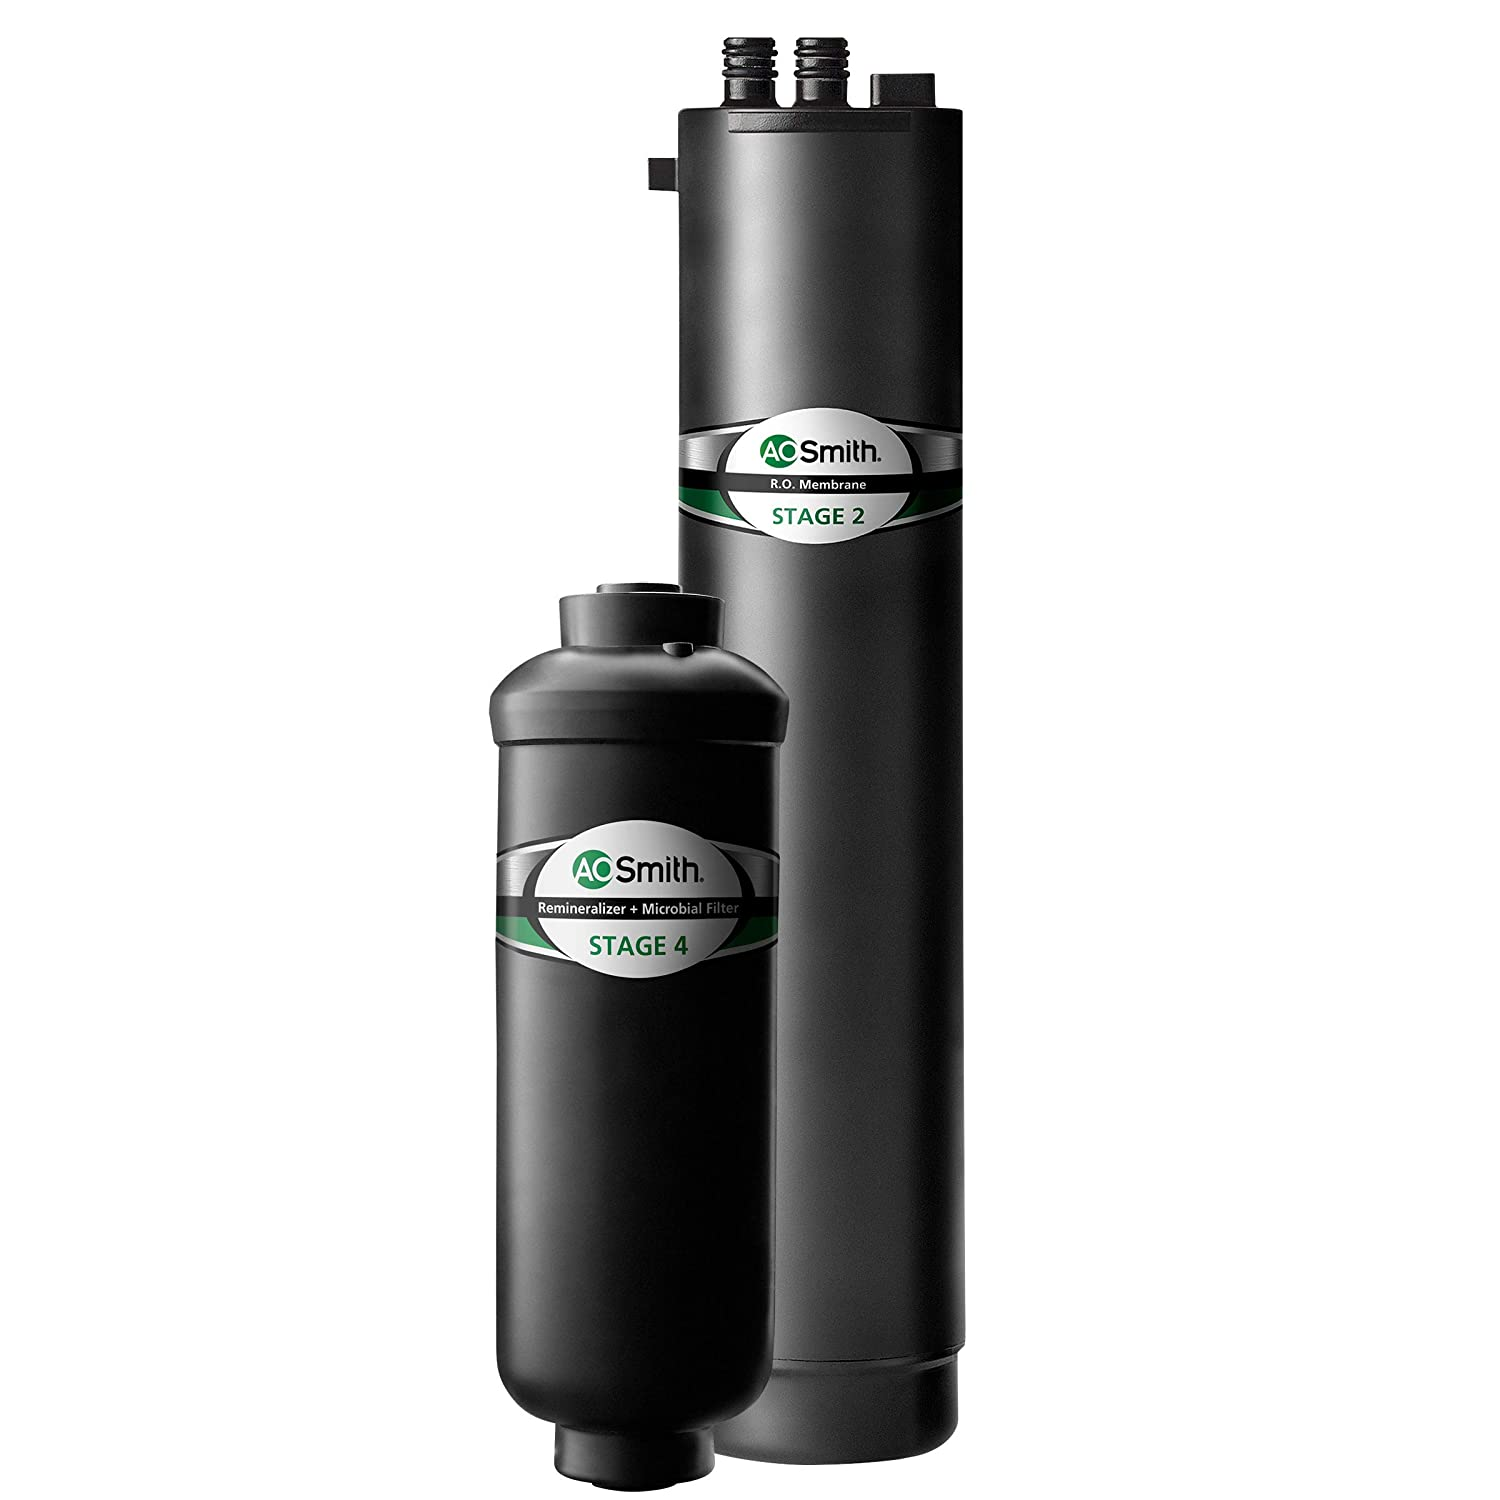 AO Smith Membrane & Remineralizer Replacements